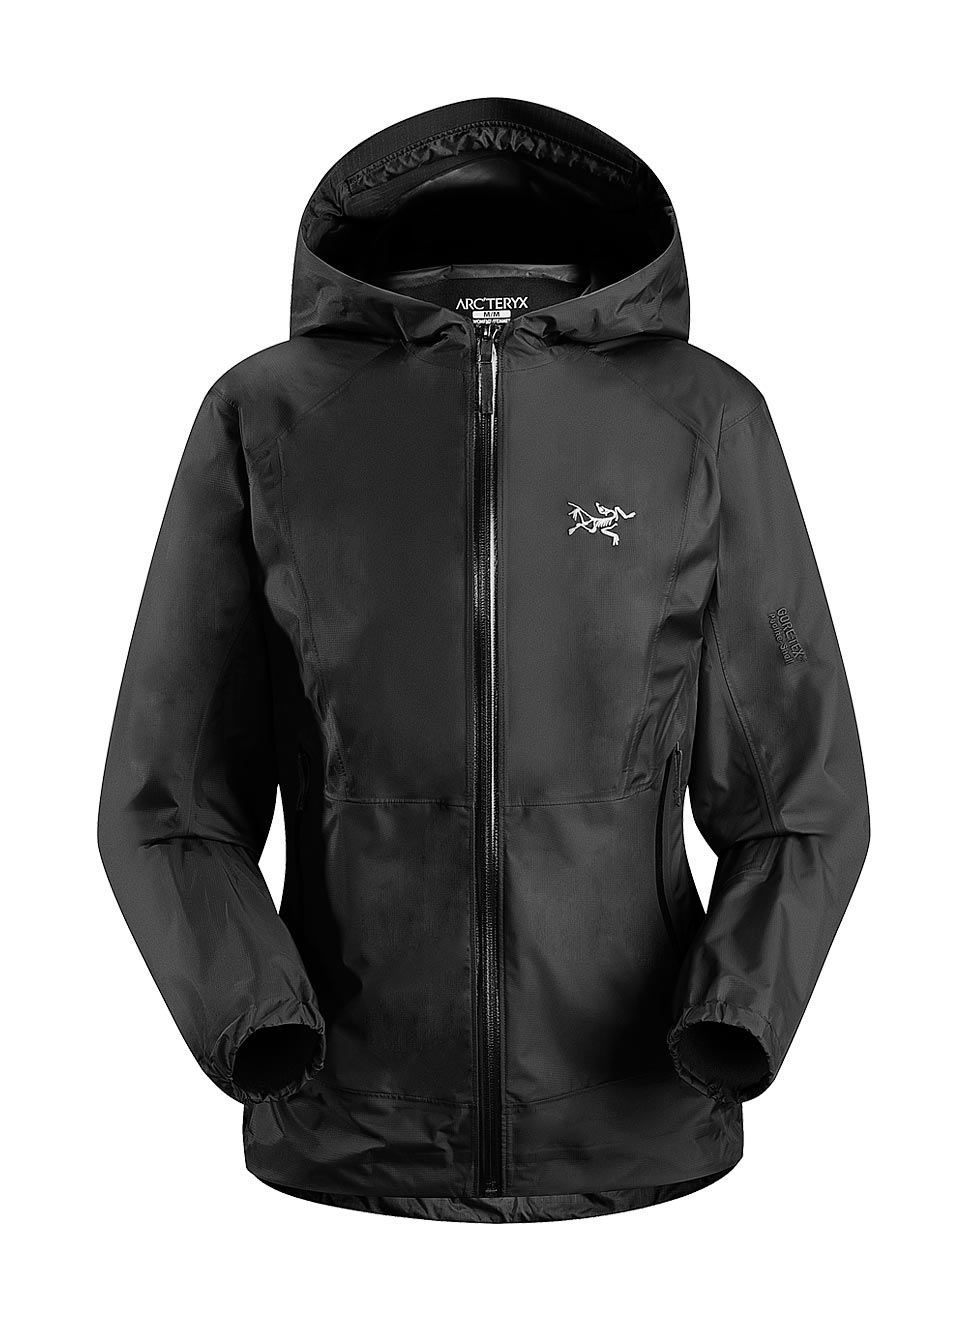 Arcteryx Black Consort Jacket - New